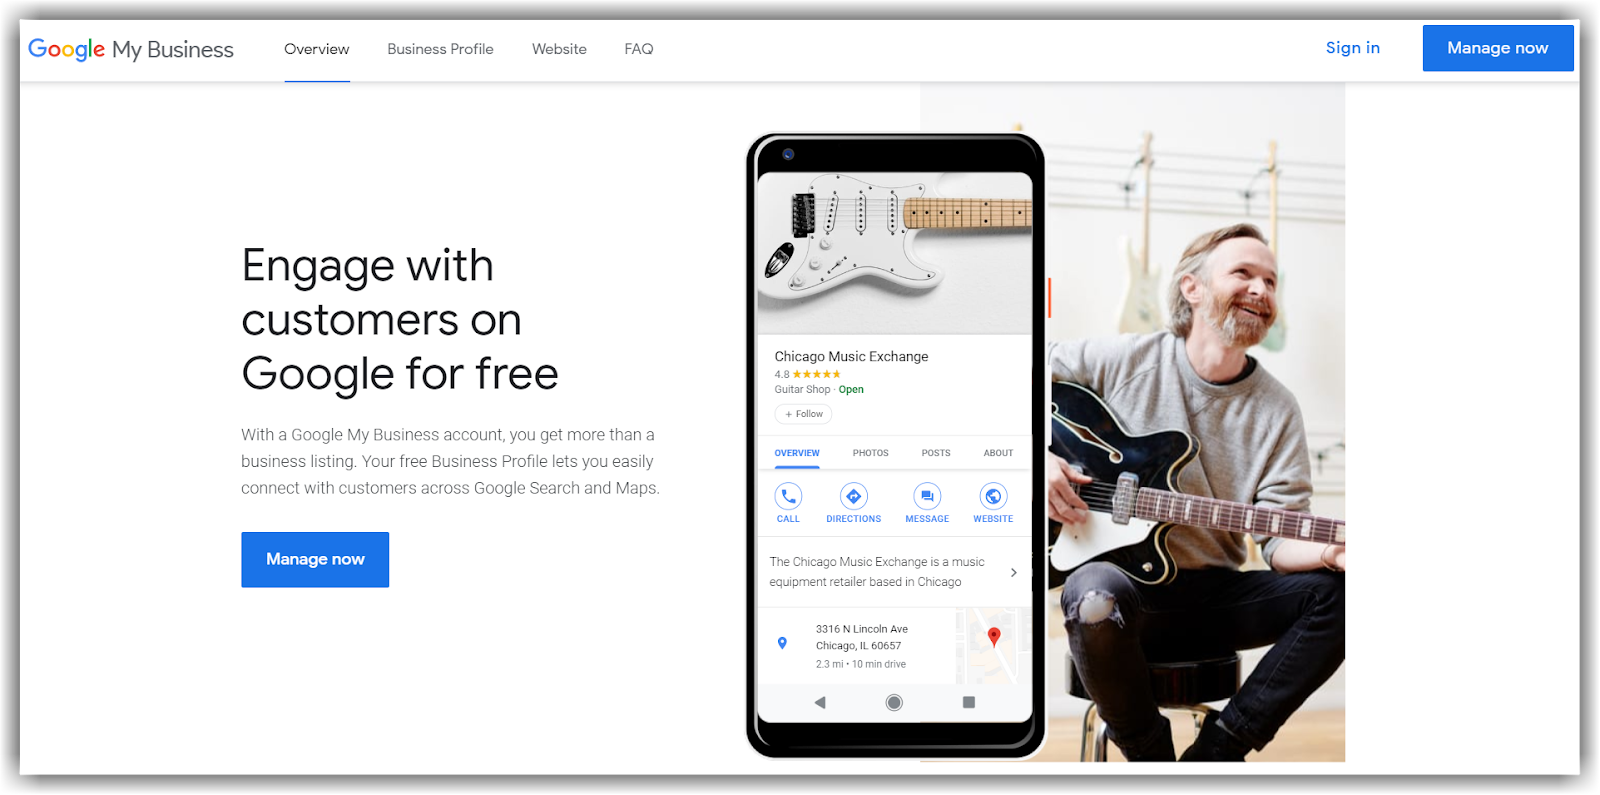 Google My Business: https://www.google.com/business/ to claim your business with Google